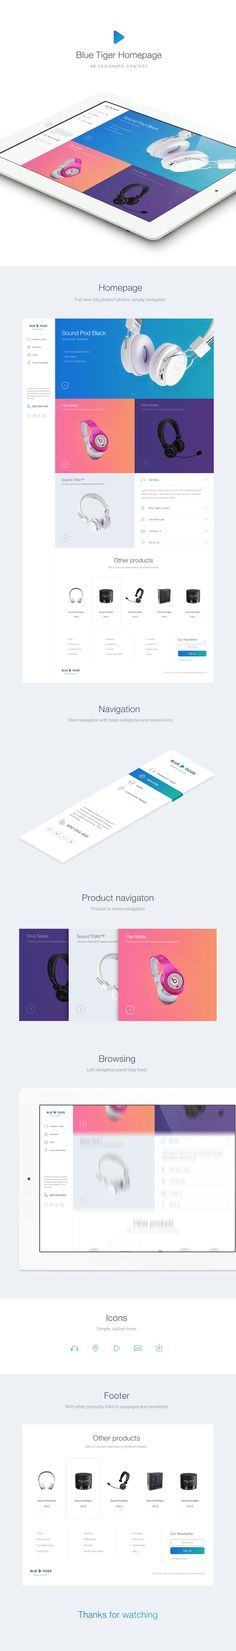 Blue Tiger Homepage by Martin Rus http://bit.ly/1pzrje6